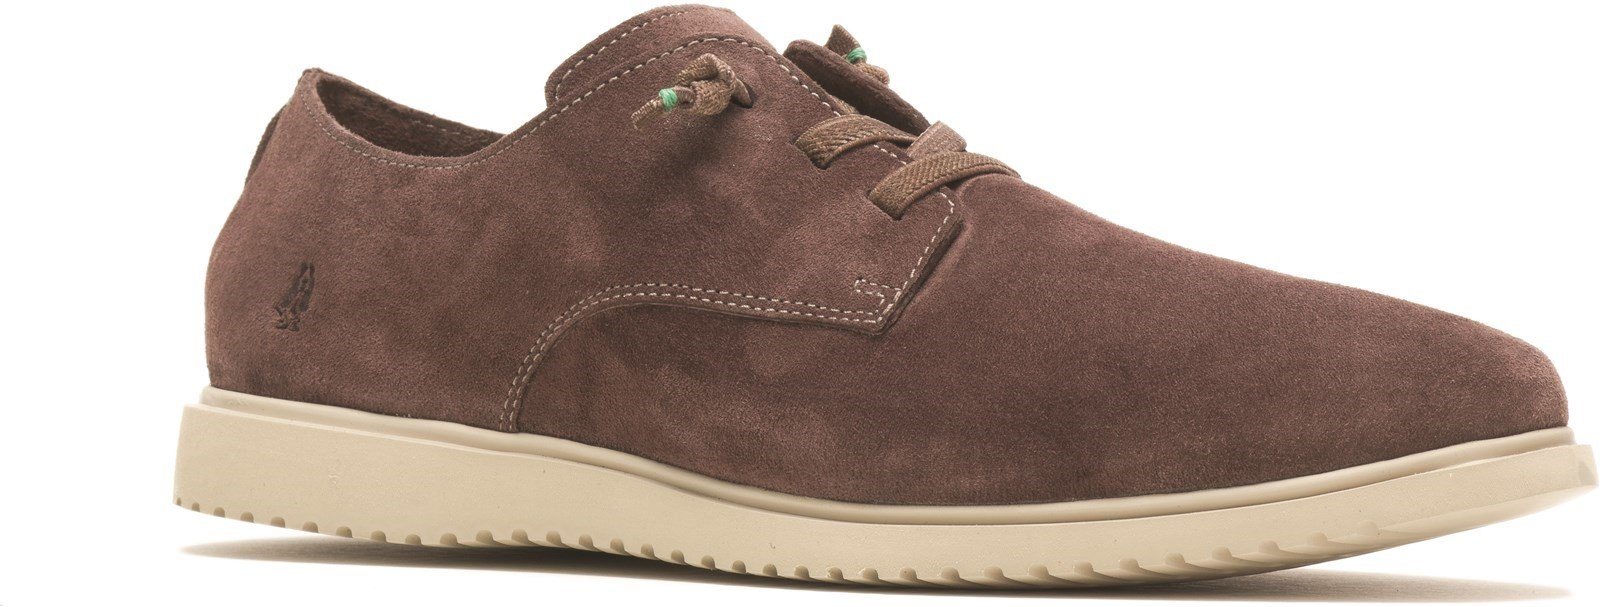 Hush Puppies Men's Everyday Lace Trainer Coffee 31968 - Coffee 6